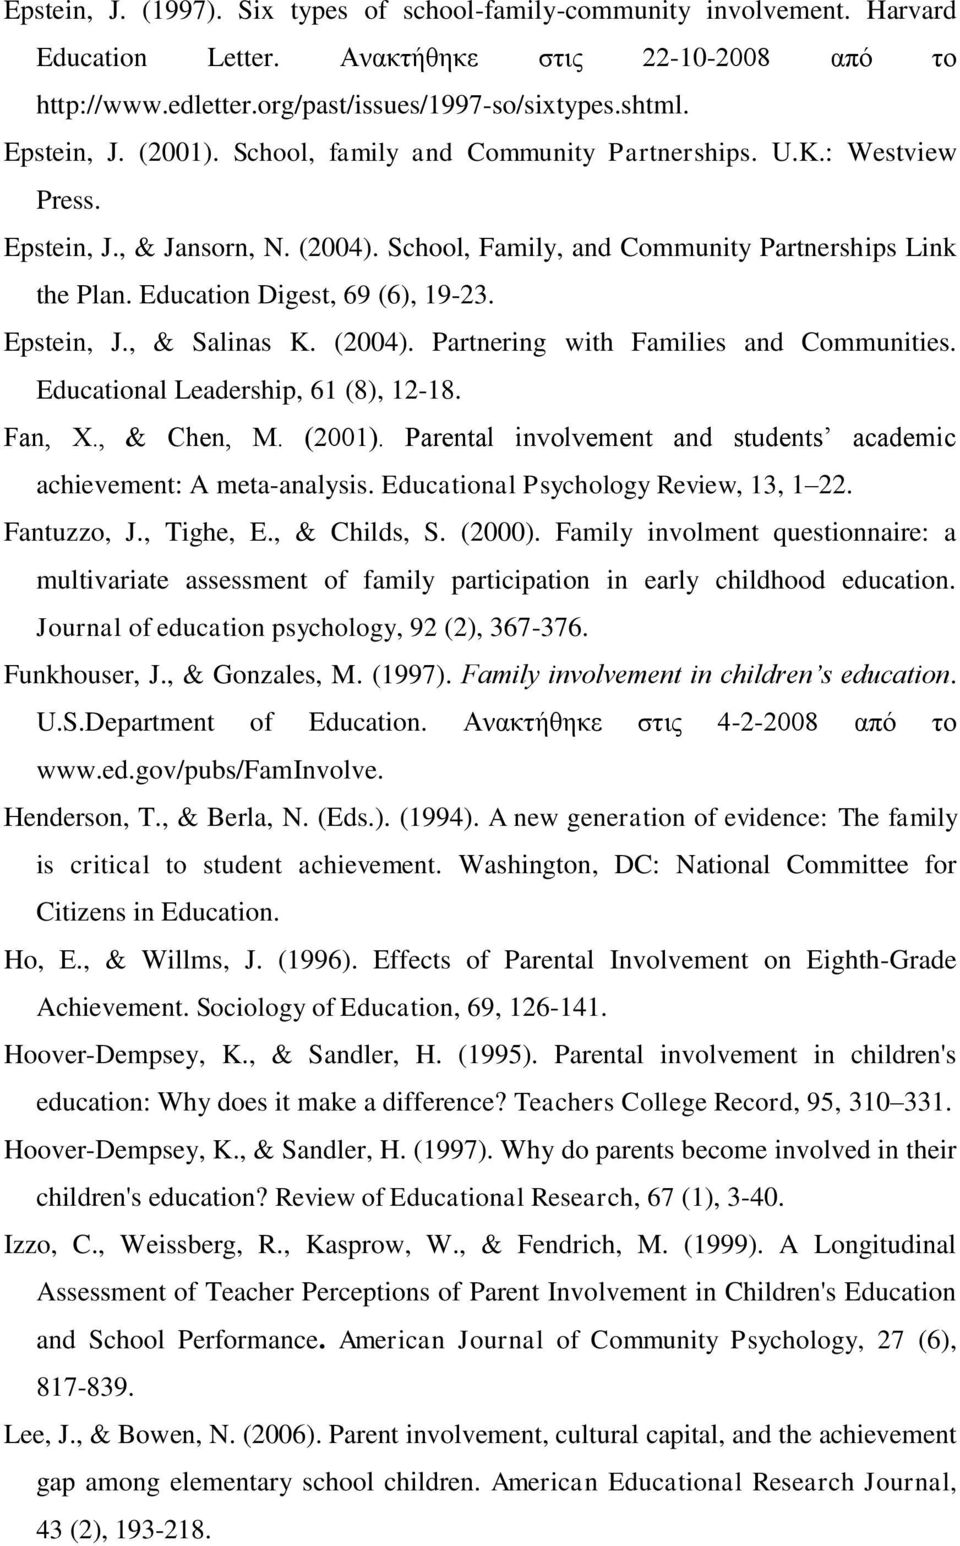 Education Digest, 69 (6), 19-23. Epstein, J., & Salinas K. (2004). Partnering with Families and Communities. Educational Leadership, 61 (8), 12-18. Fan, X., & Chen, M. (2001).